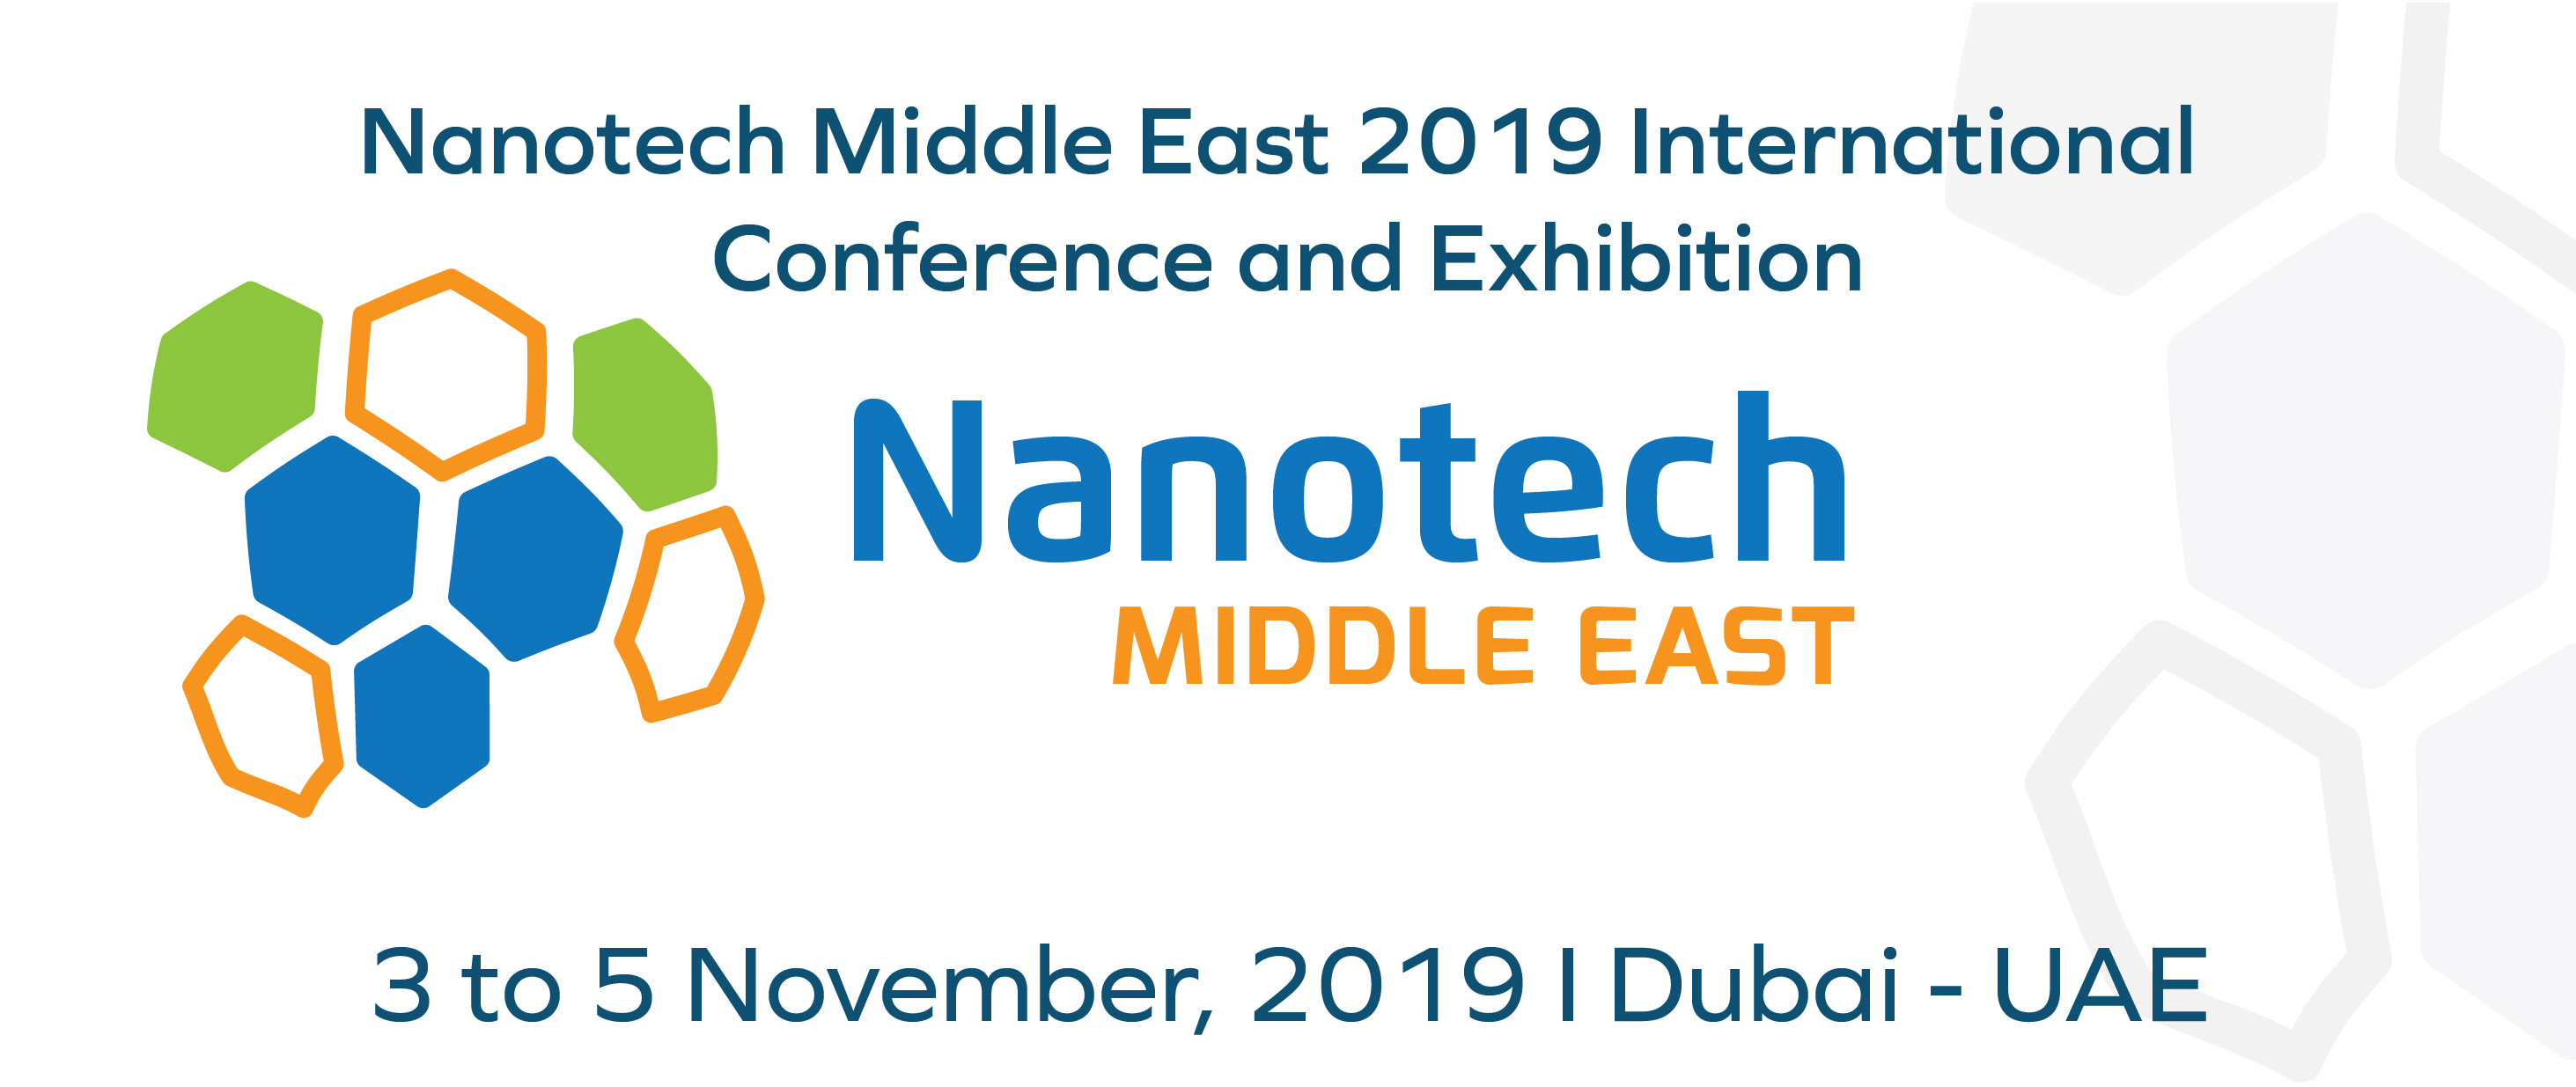 Nanotech Middle East 2019 Conference and Exhibition, 3rd to 5th November, 2019 - Dubai, UAE